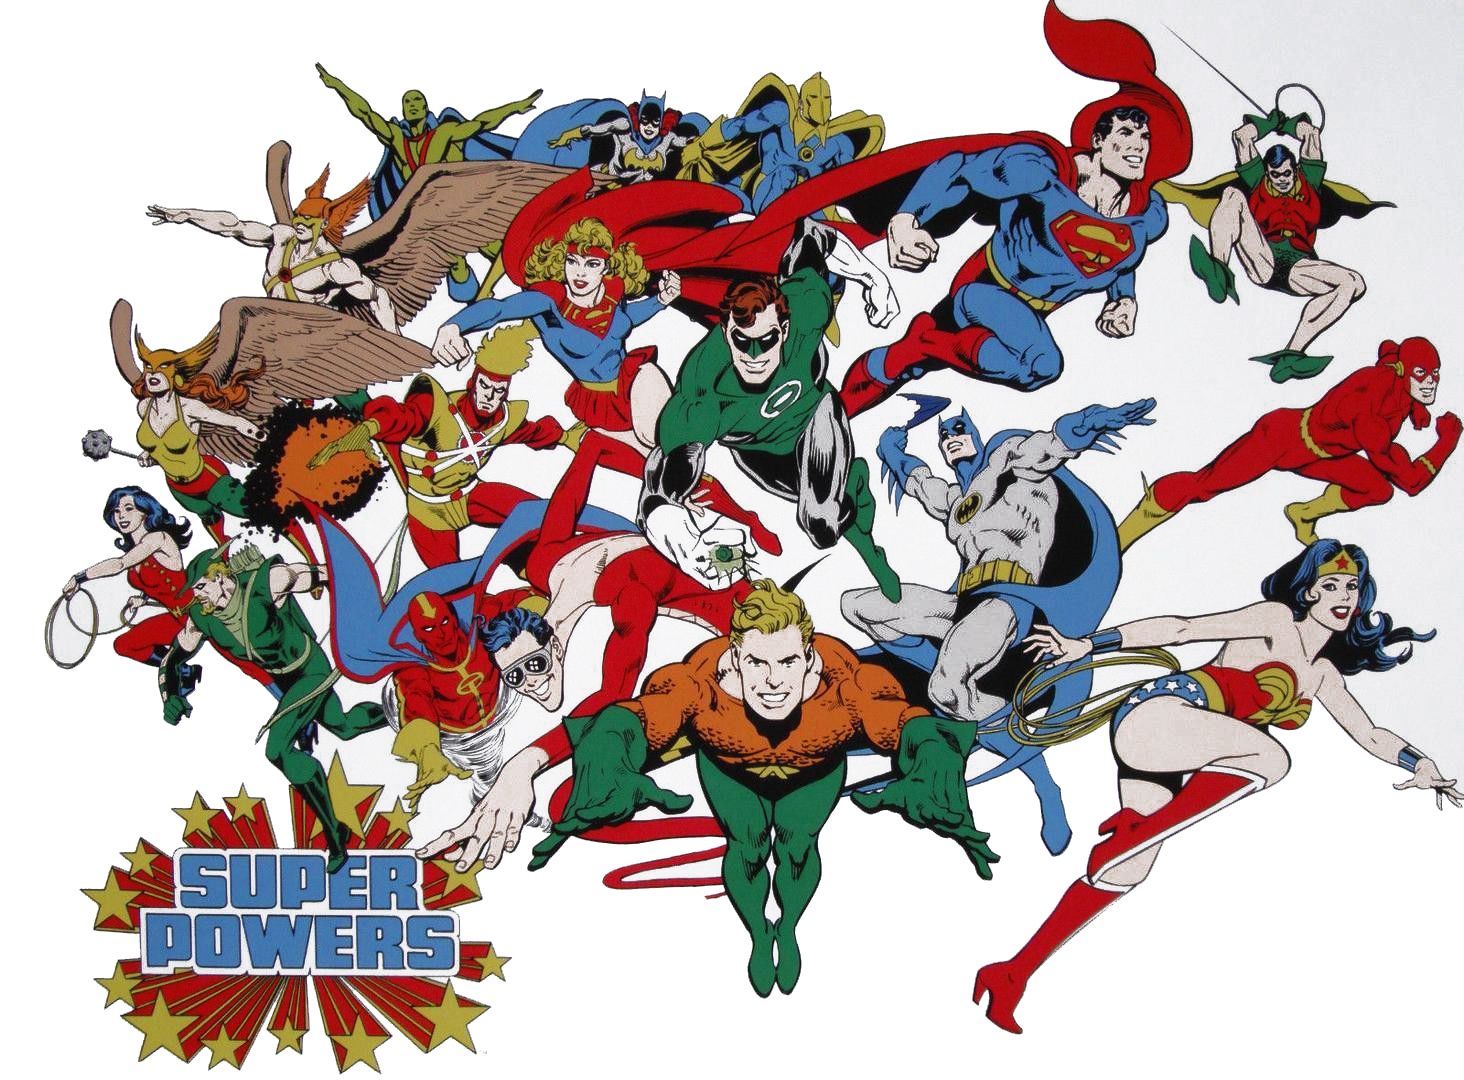 A Super Powers poster from the mid '80s, art by Jose Luis Garcia Lopez.